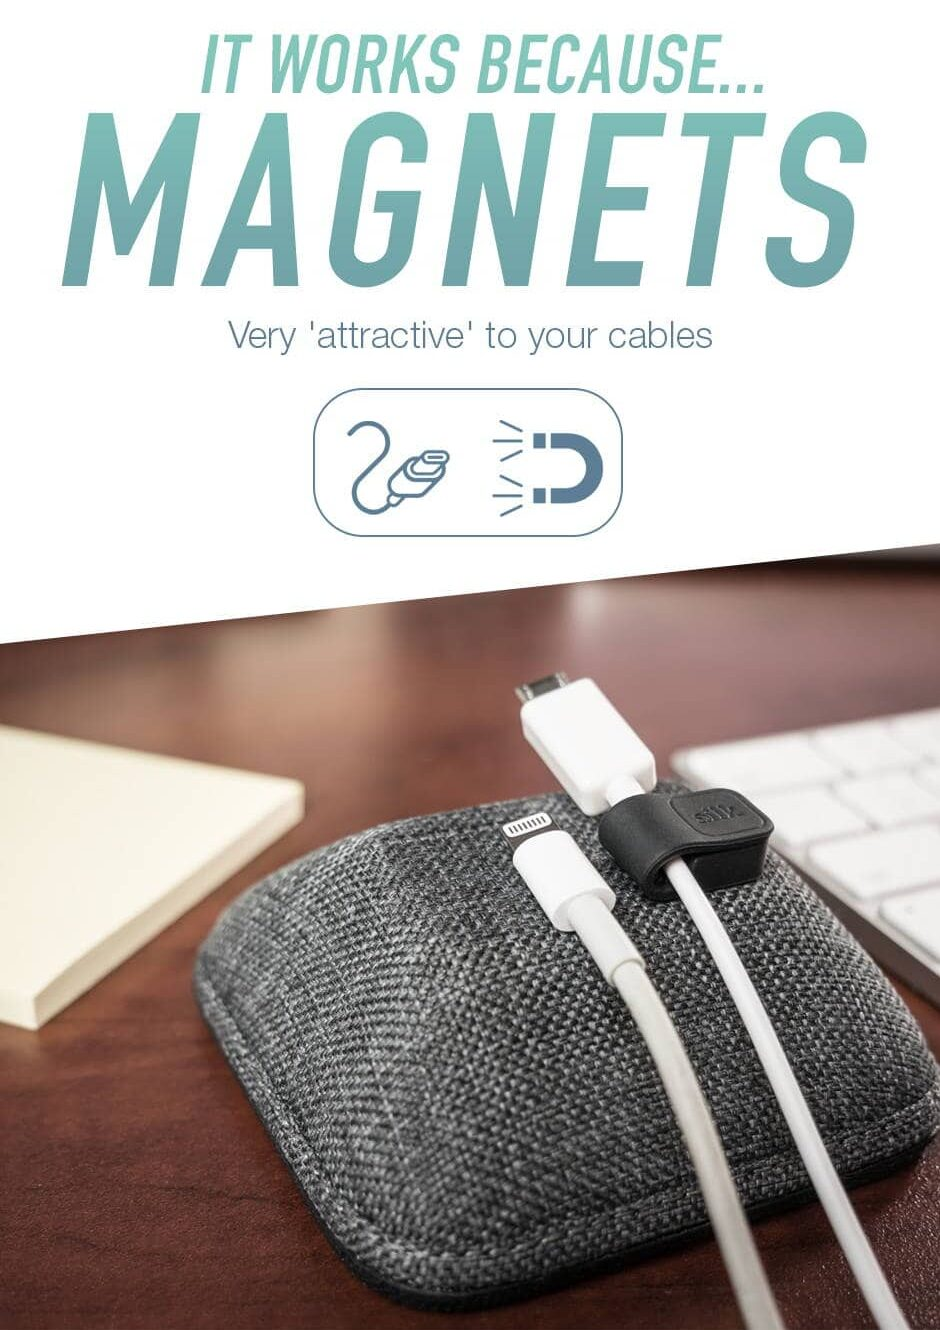 Smartish Cable Wrangler: This Magnetic Cord Organizer Keep your cables neatly in place with strong magnets.